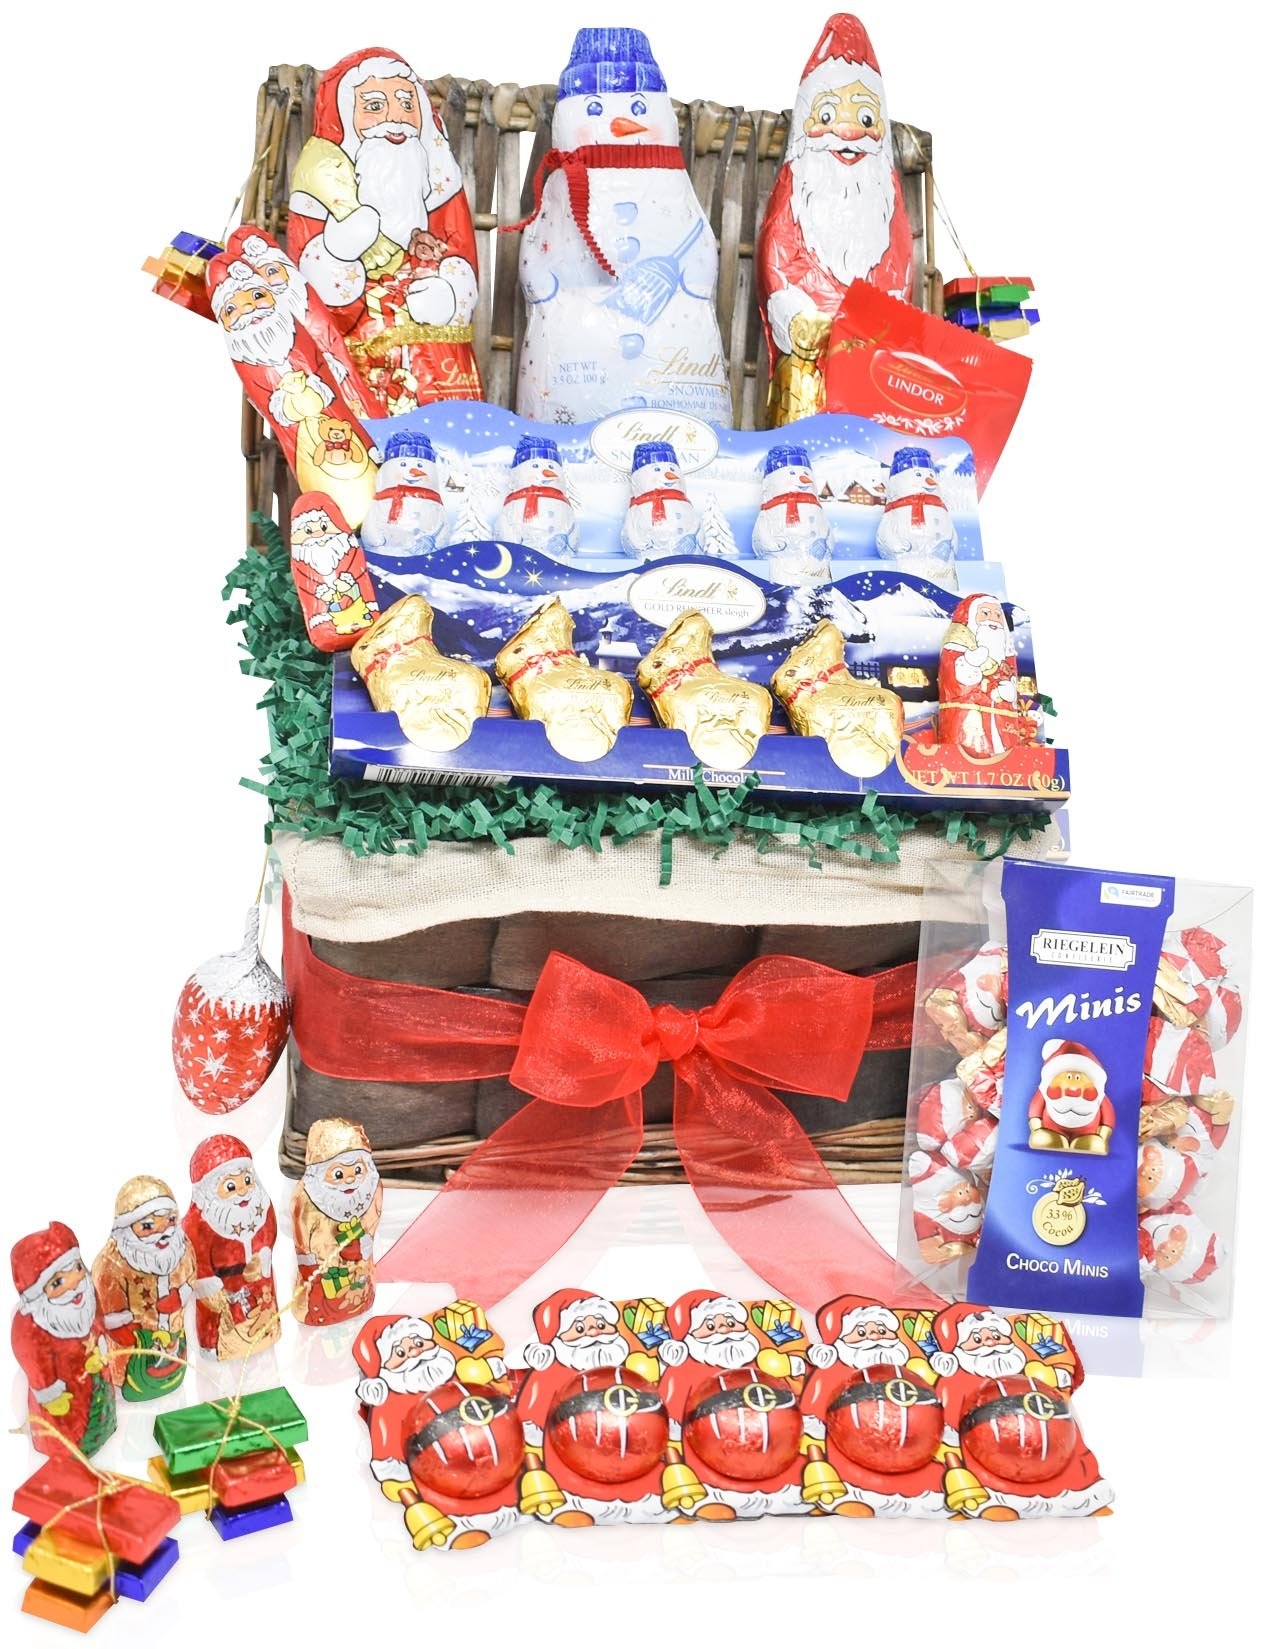 Lindt Valentine's Day Chocolate Variety Gift Basket - Lindt Chocolate Specials - Mixed Gift Pack for Him and Her